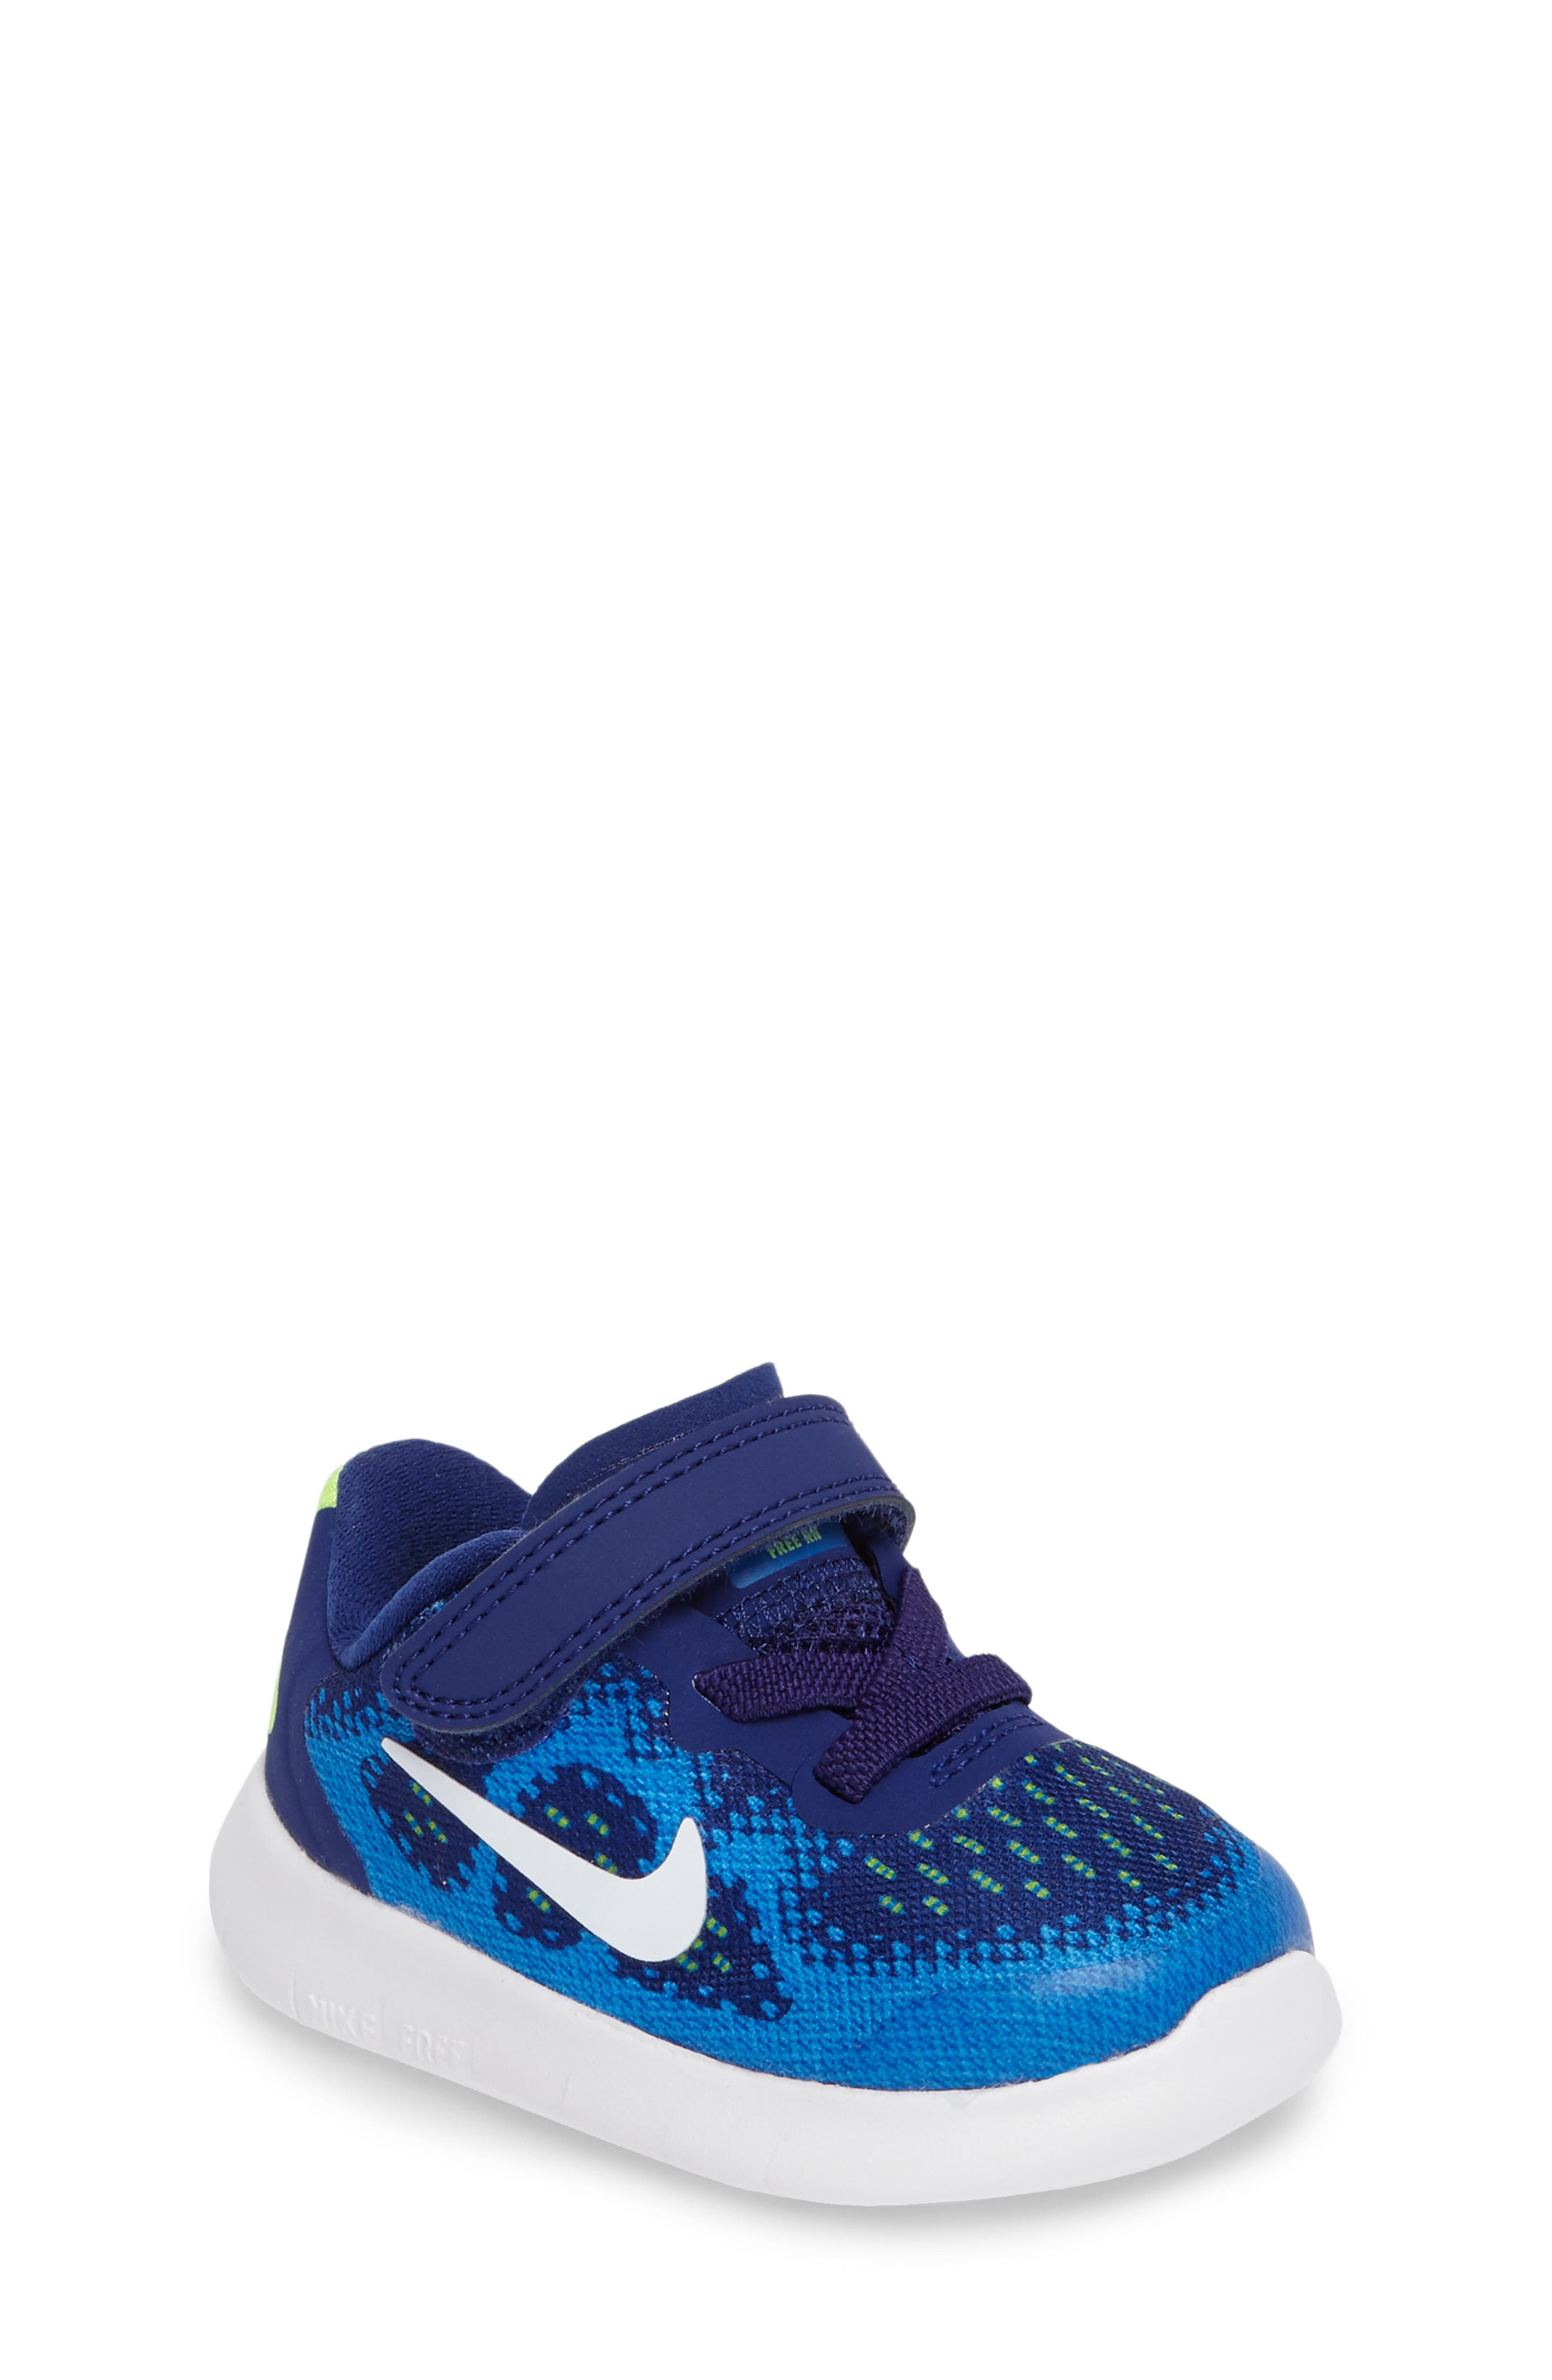 Nike Free Shoes for Boys